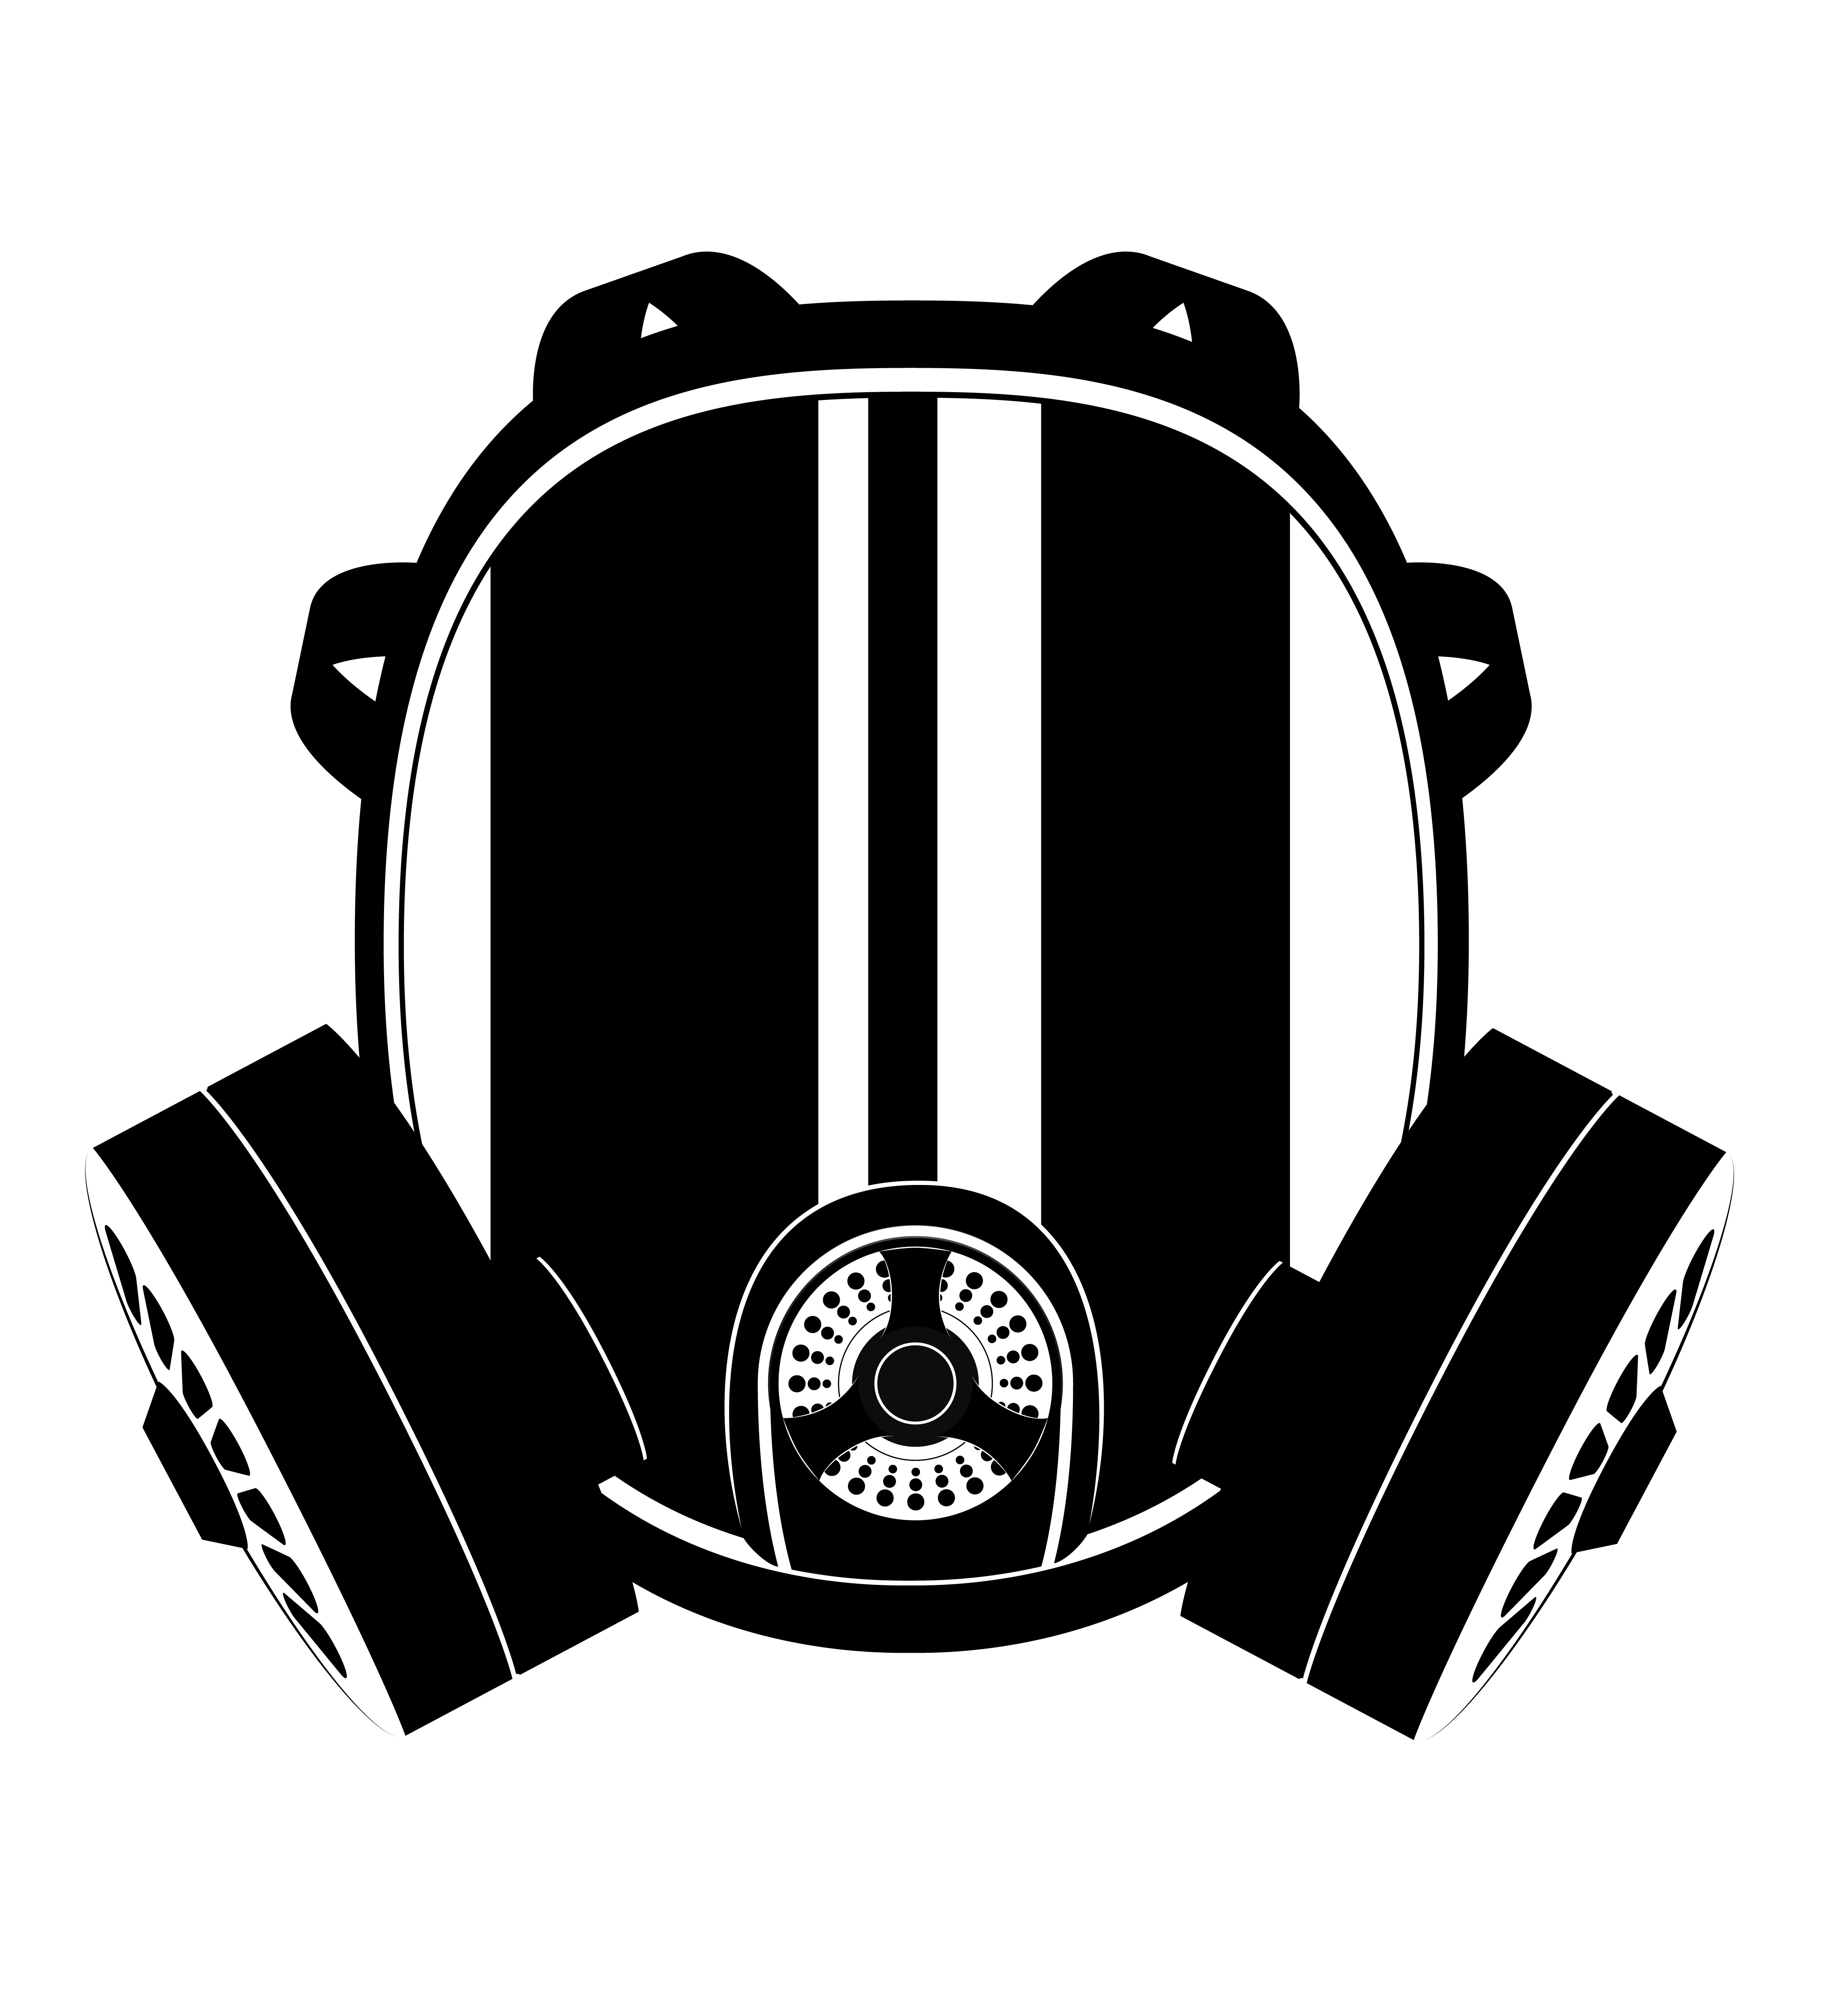 icon gas mask black and white vector illustration ...